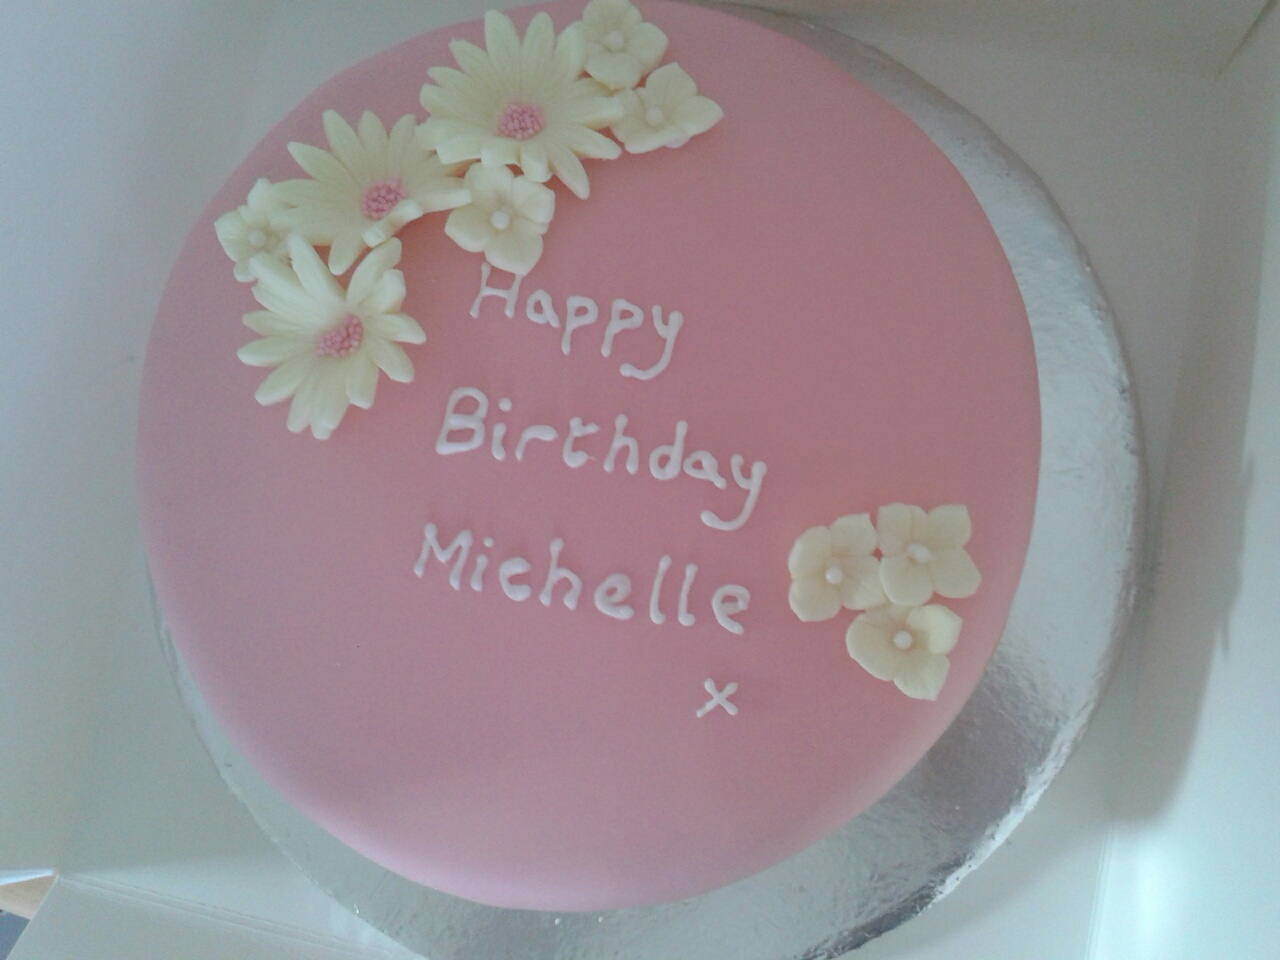 happy birthday michelle cake ; Happy-Birthday-Michelle